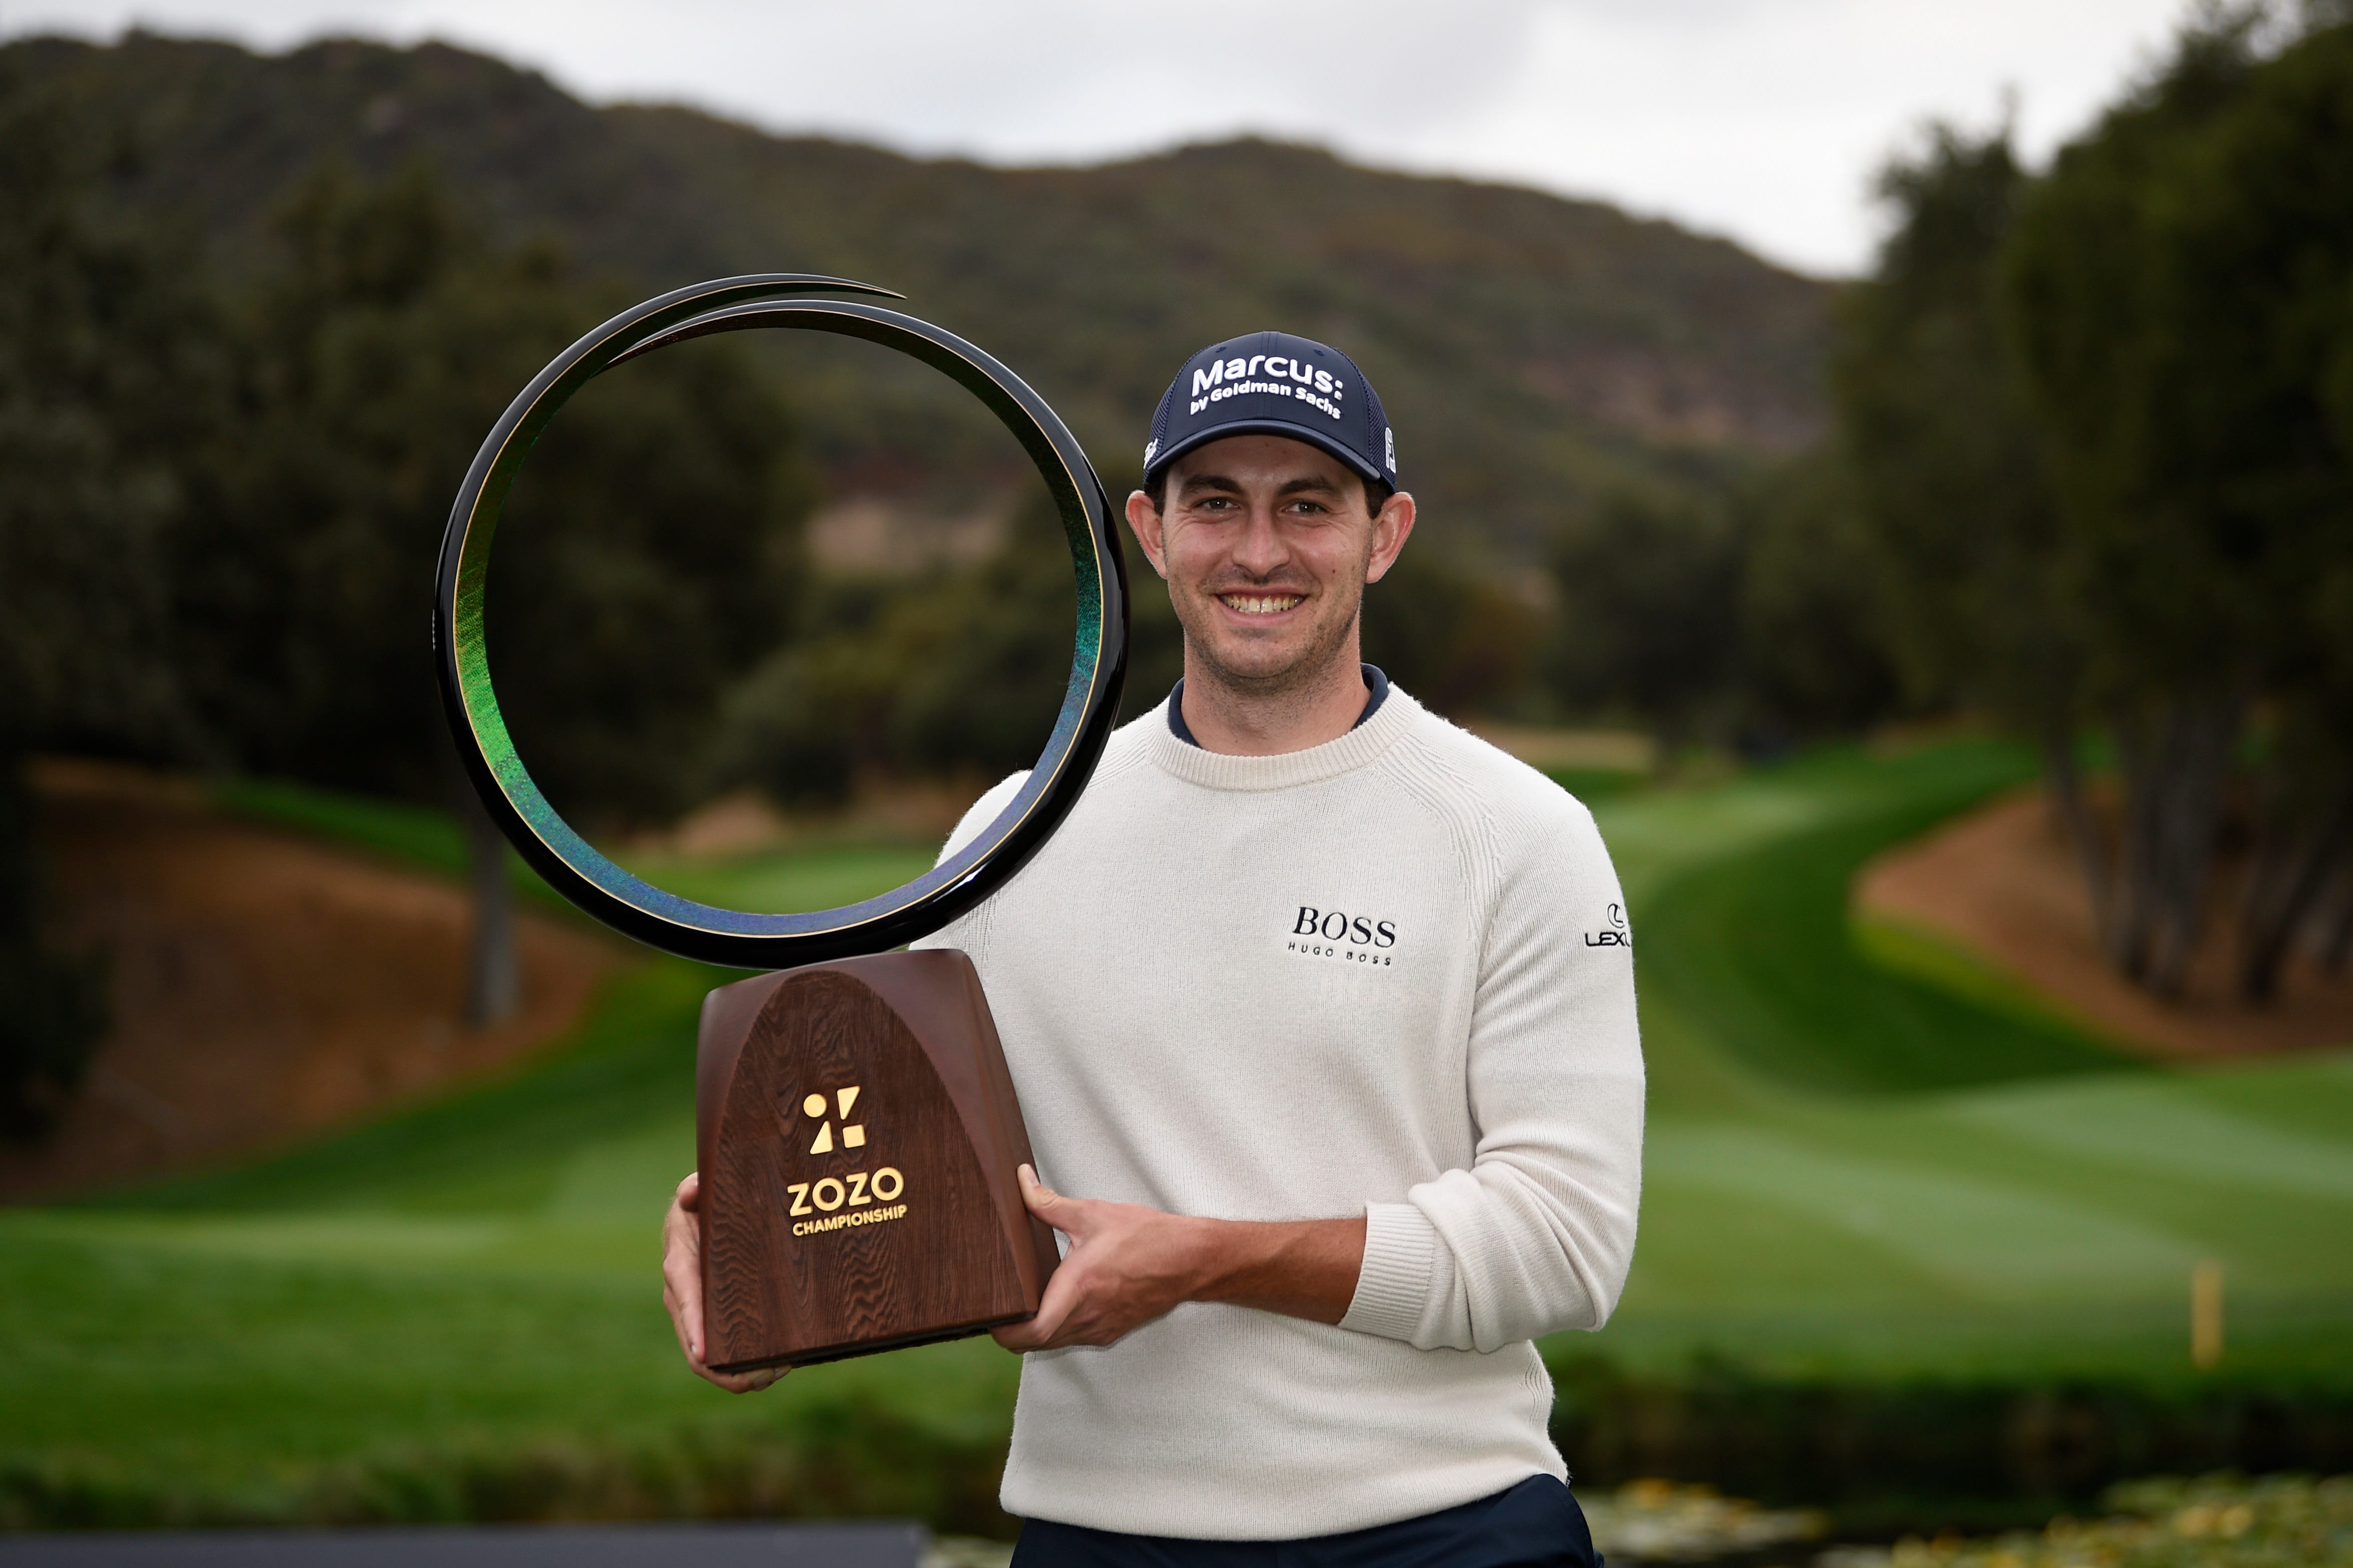 Patrick Cantlay gets hot down the stretch, wins Zozo Championship